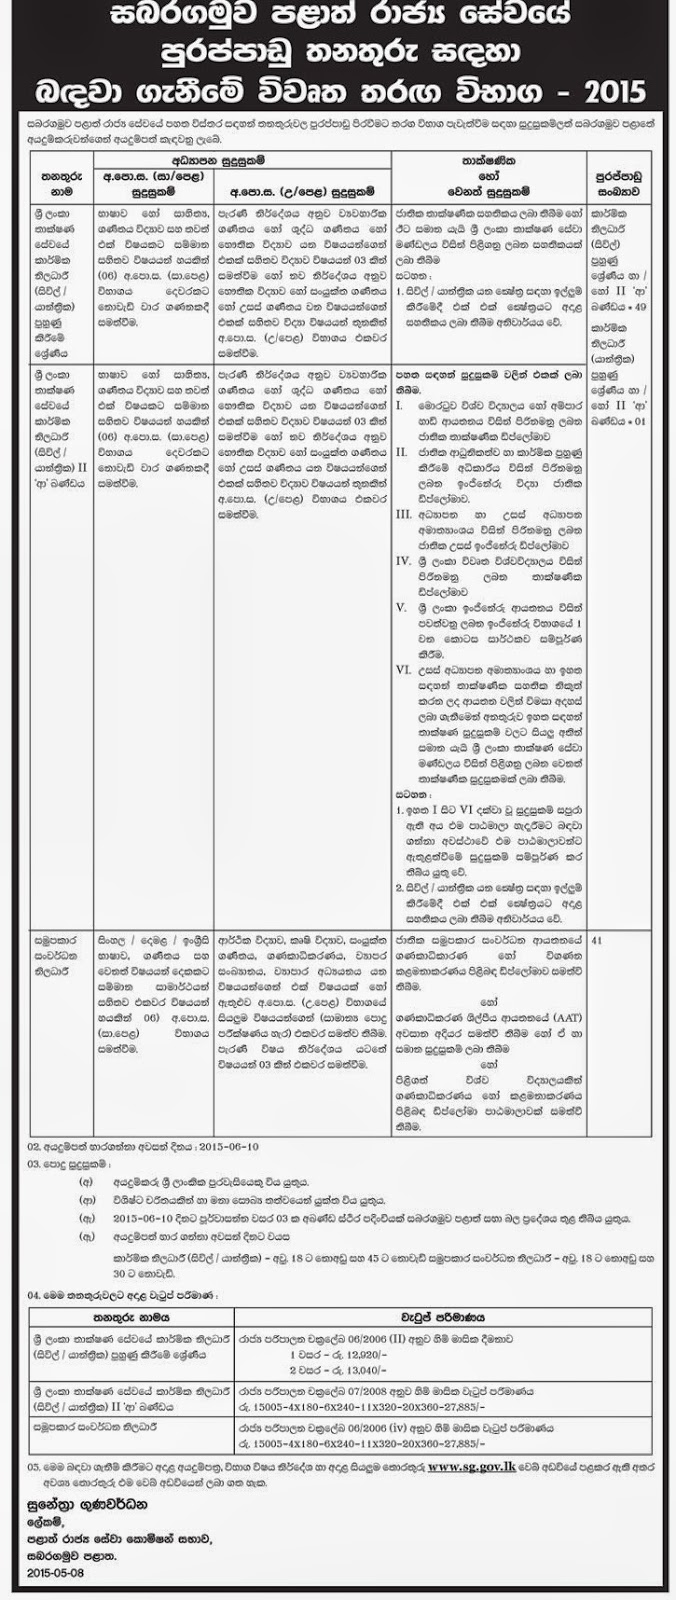 ministry of health application forms